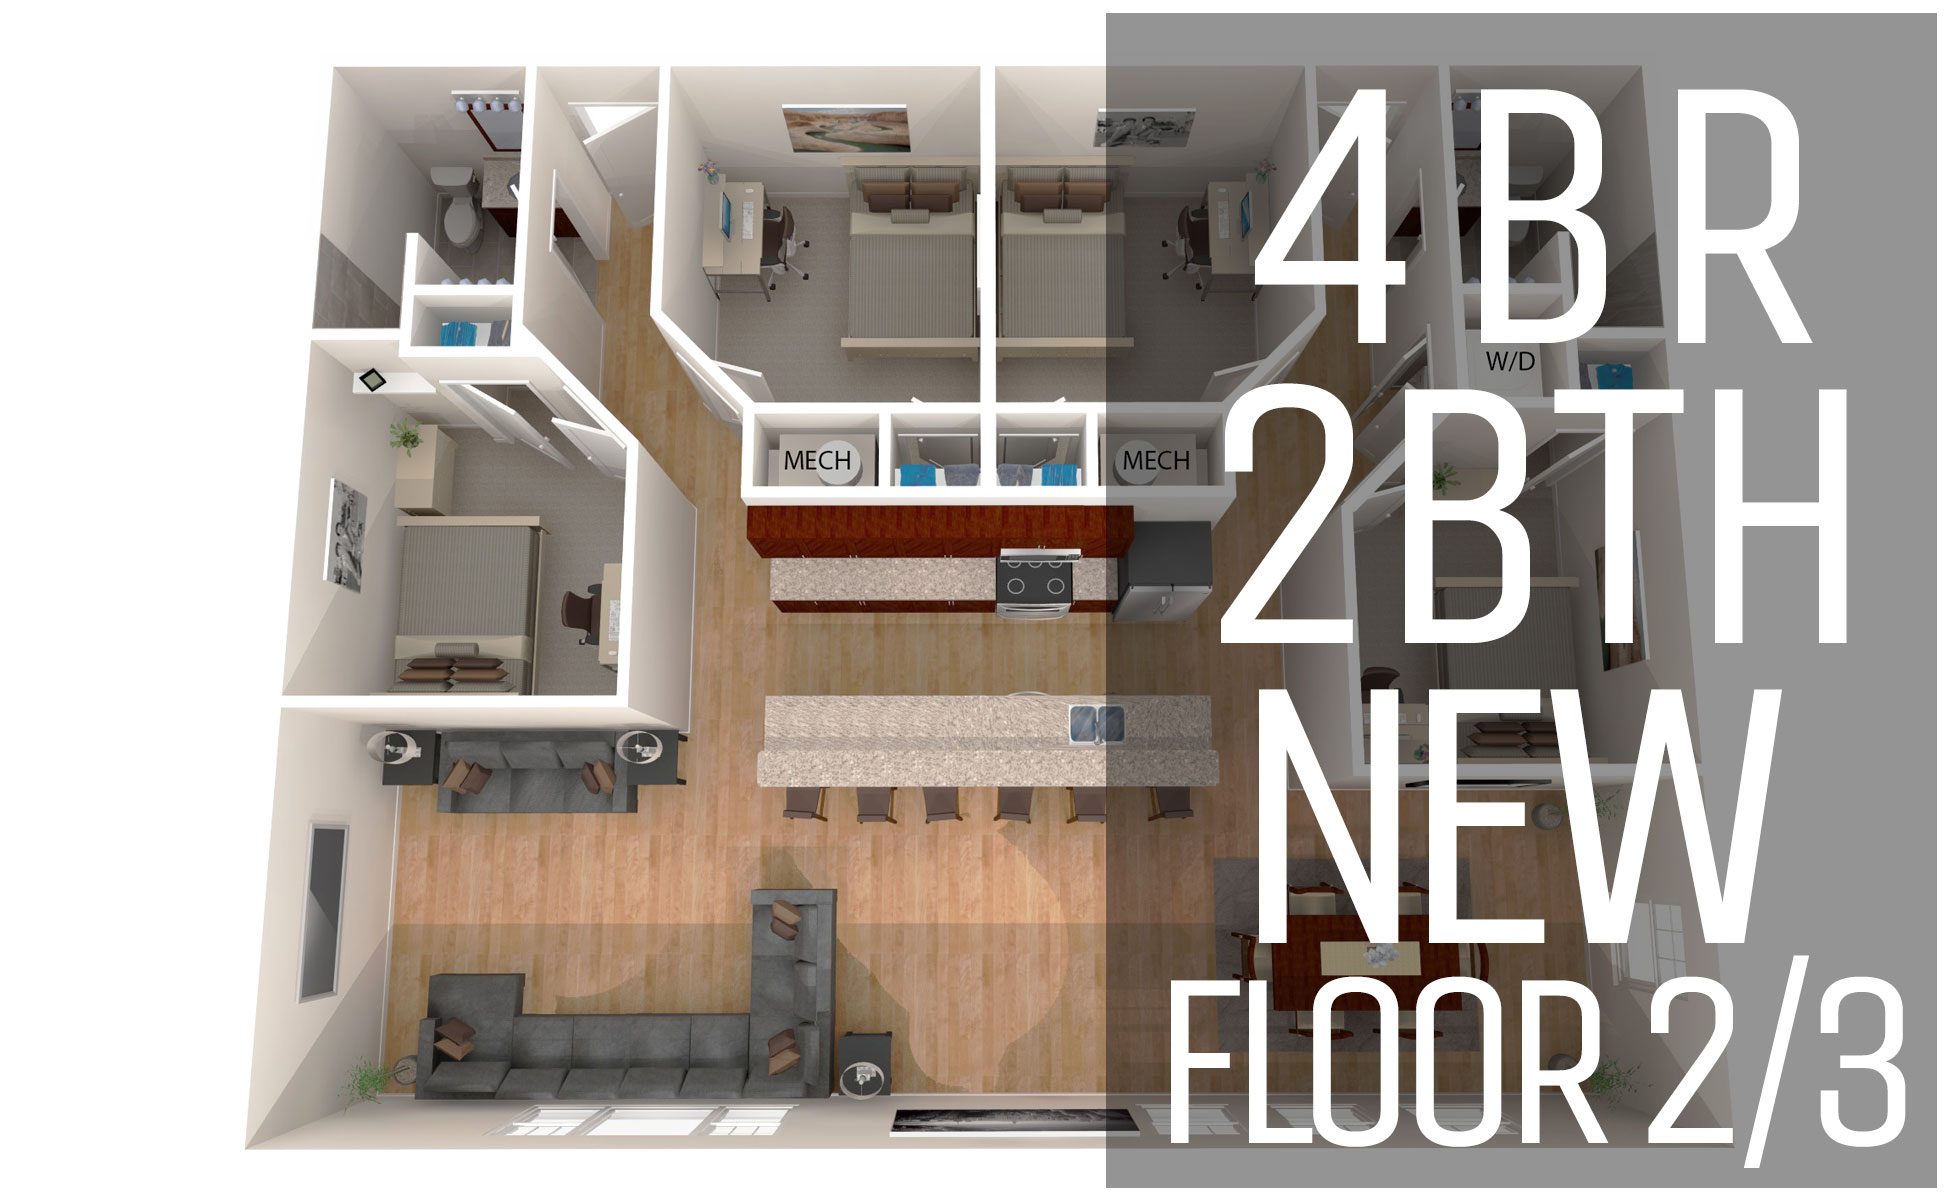 New Model U2013 Floor 2/3 4 Bedroom 2 Bath